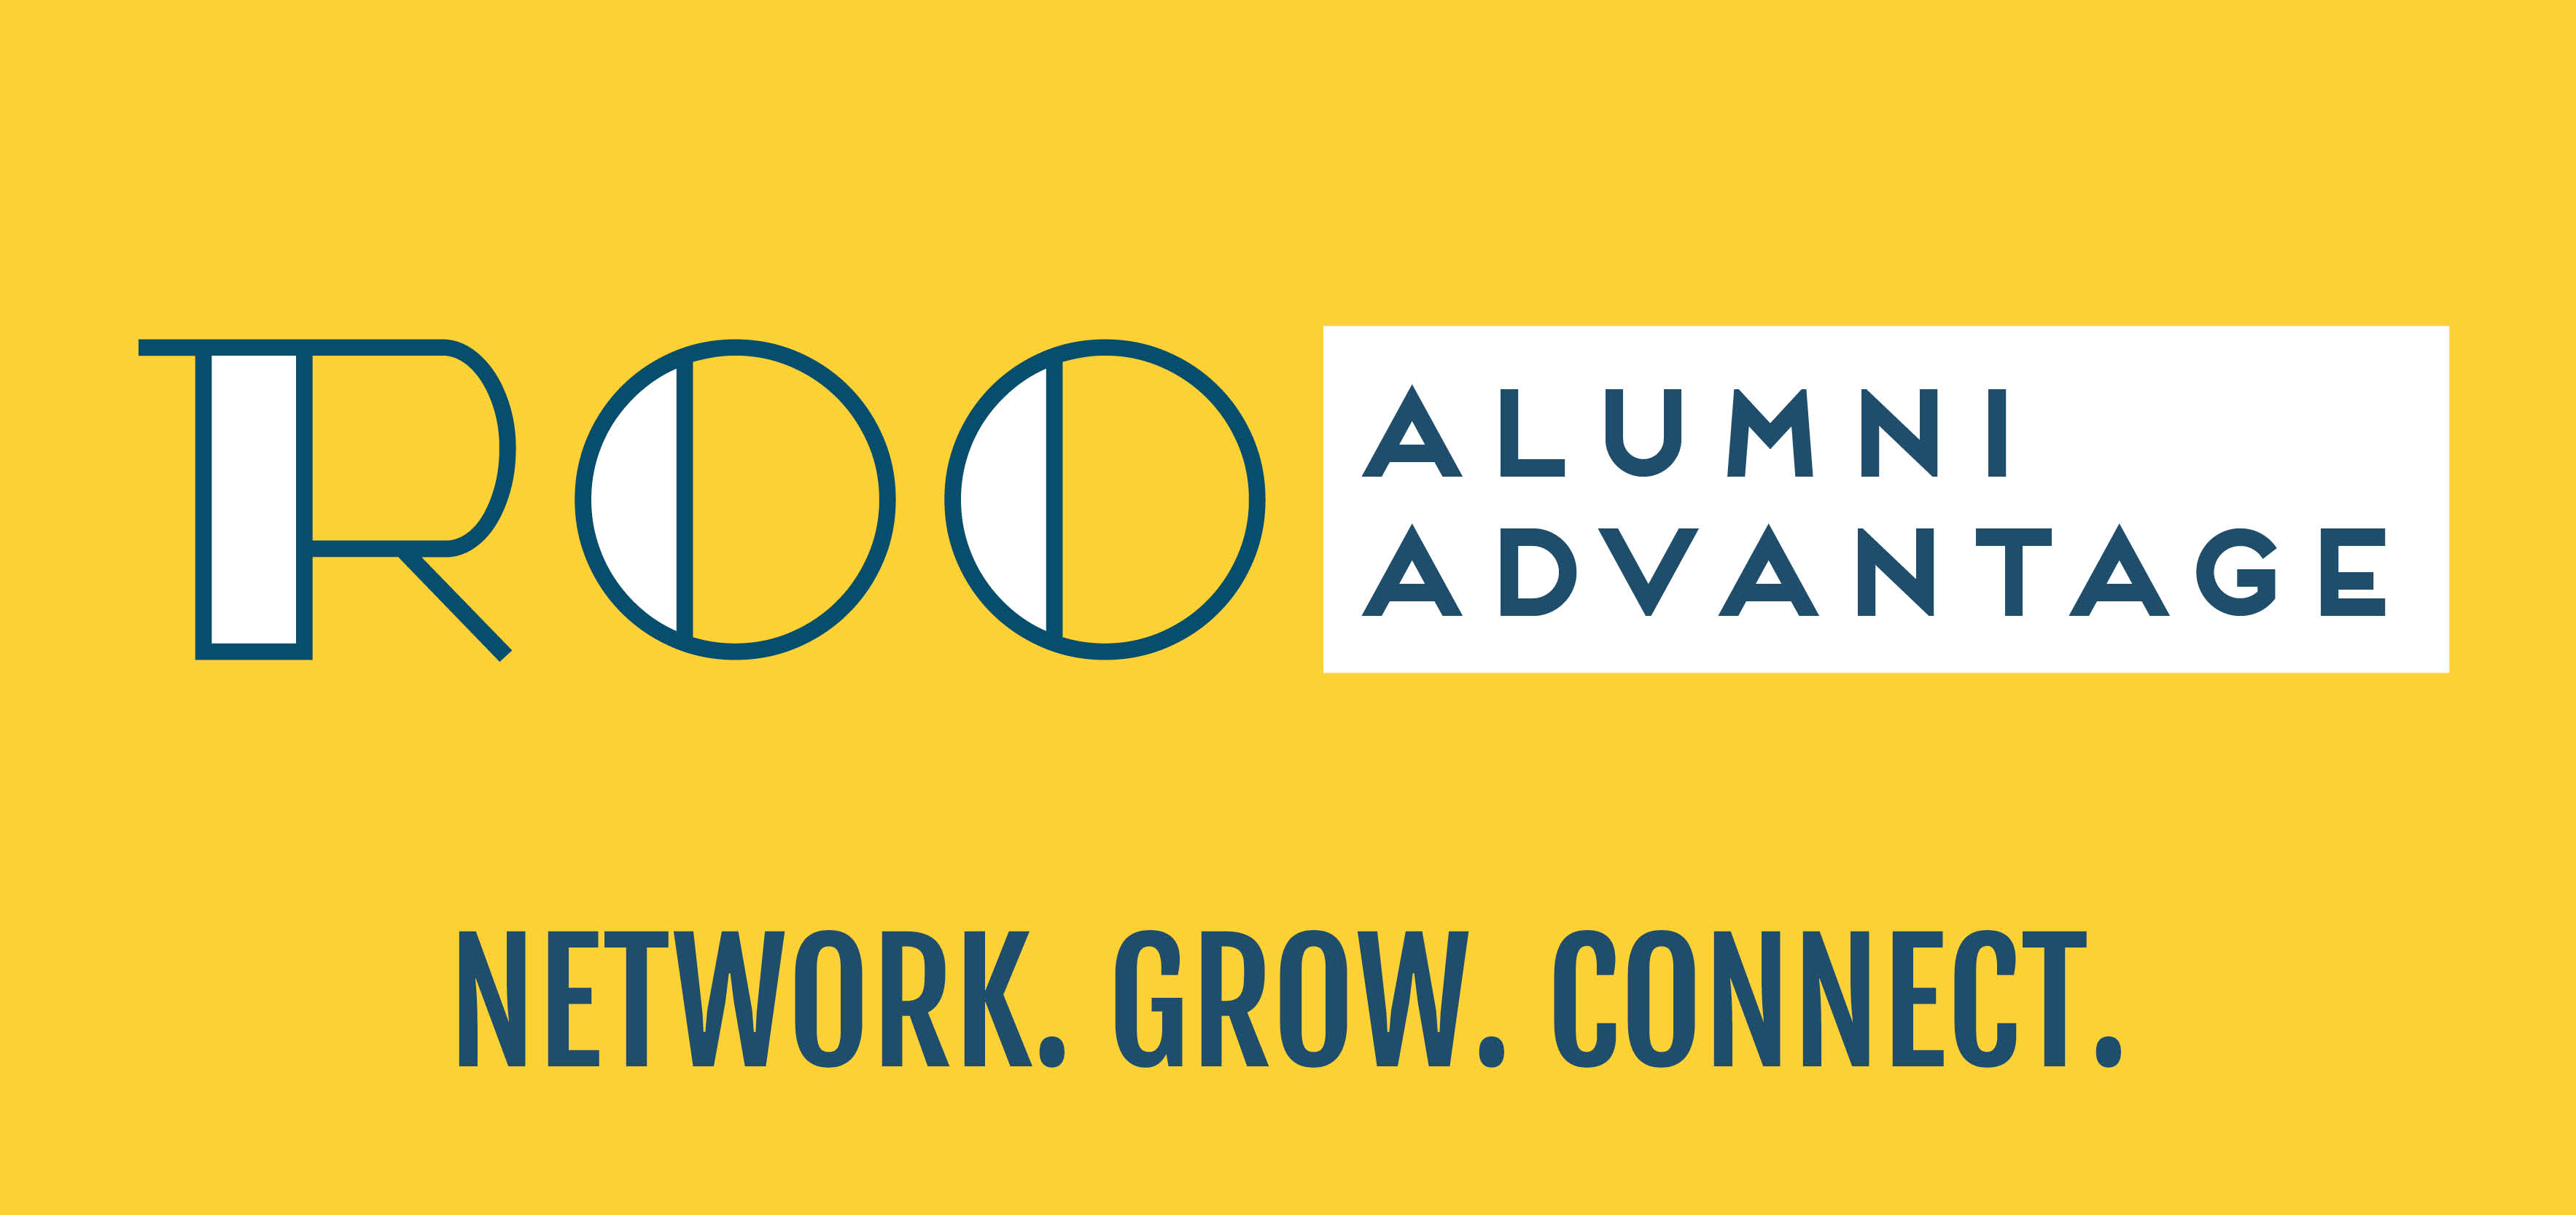 Visit the new Roo Alumni Advantage